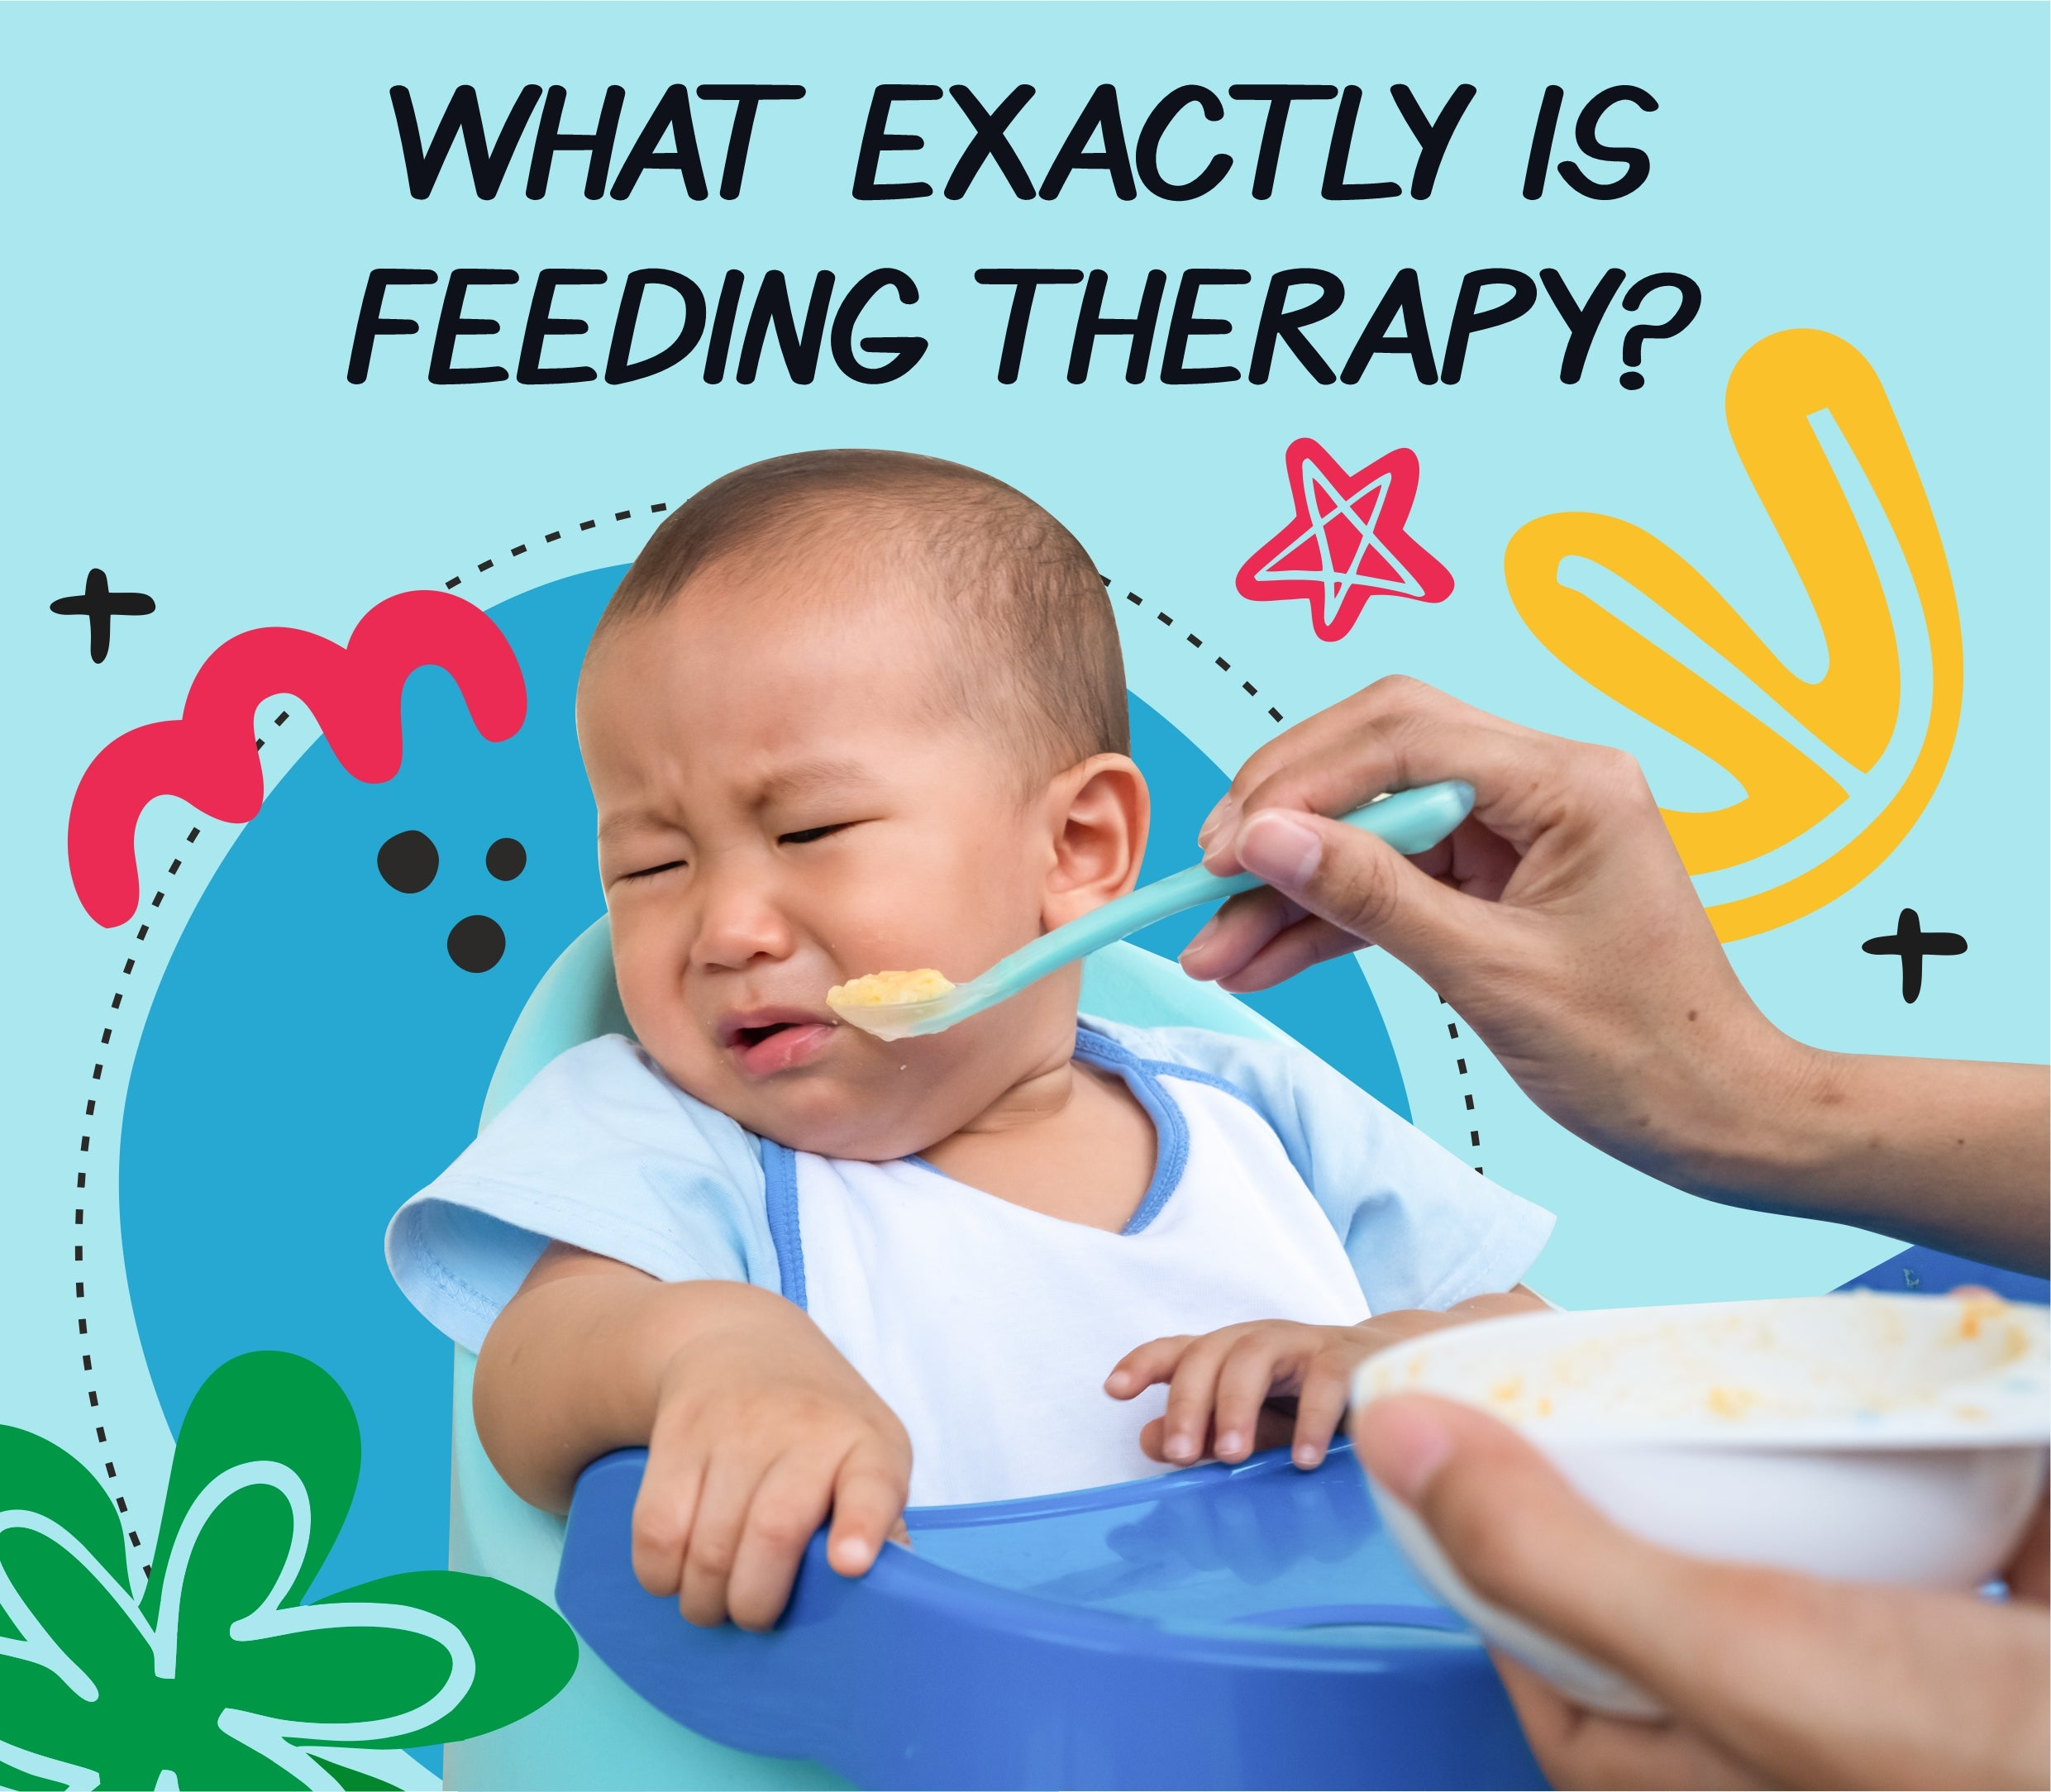 What exactly is feeding therapy?